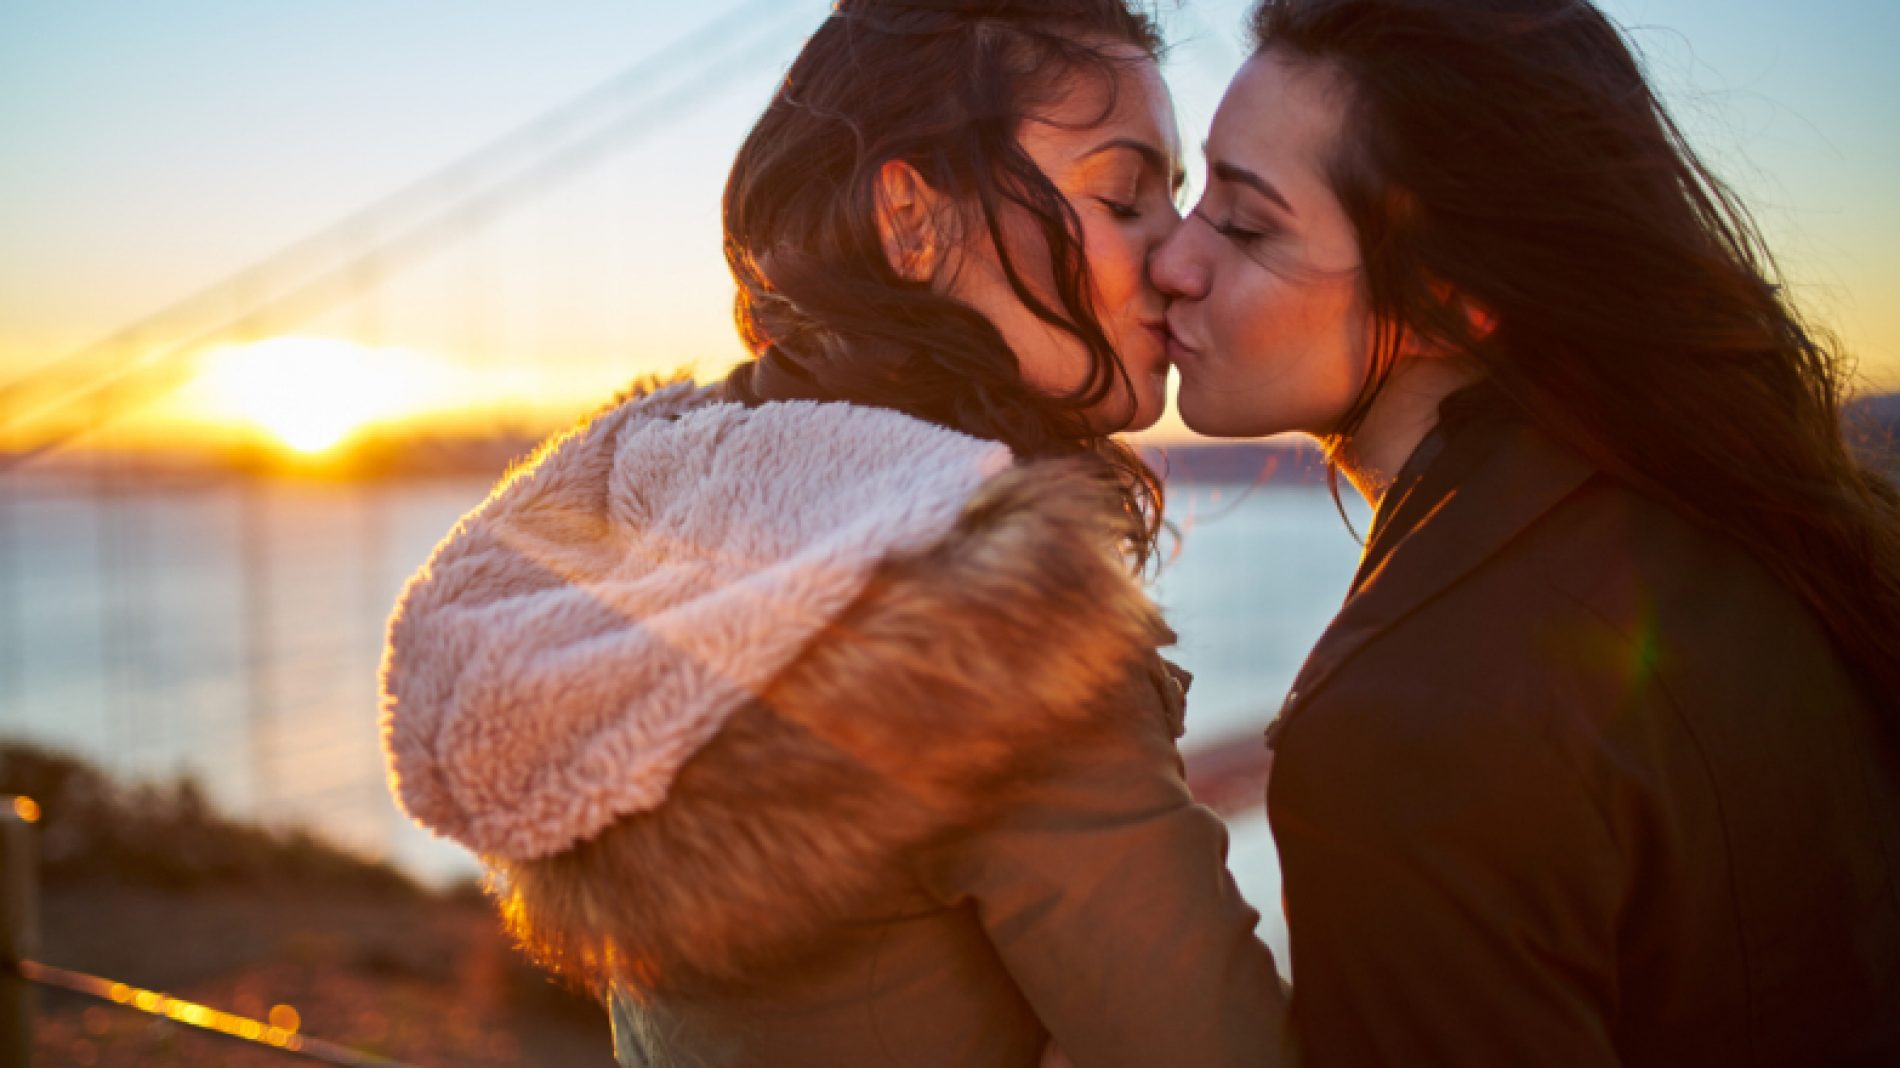 Young-couple-kissing-in-front-of-a-bridge-7zpktI